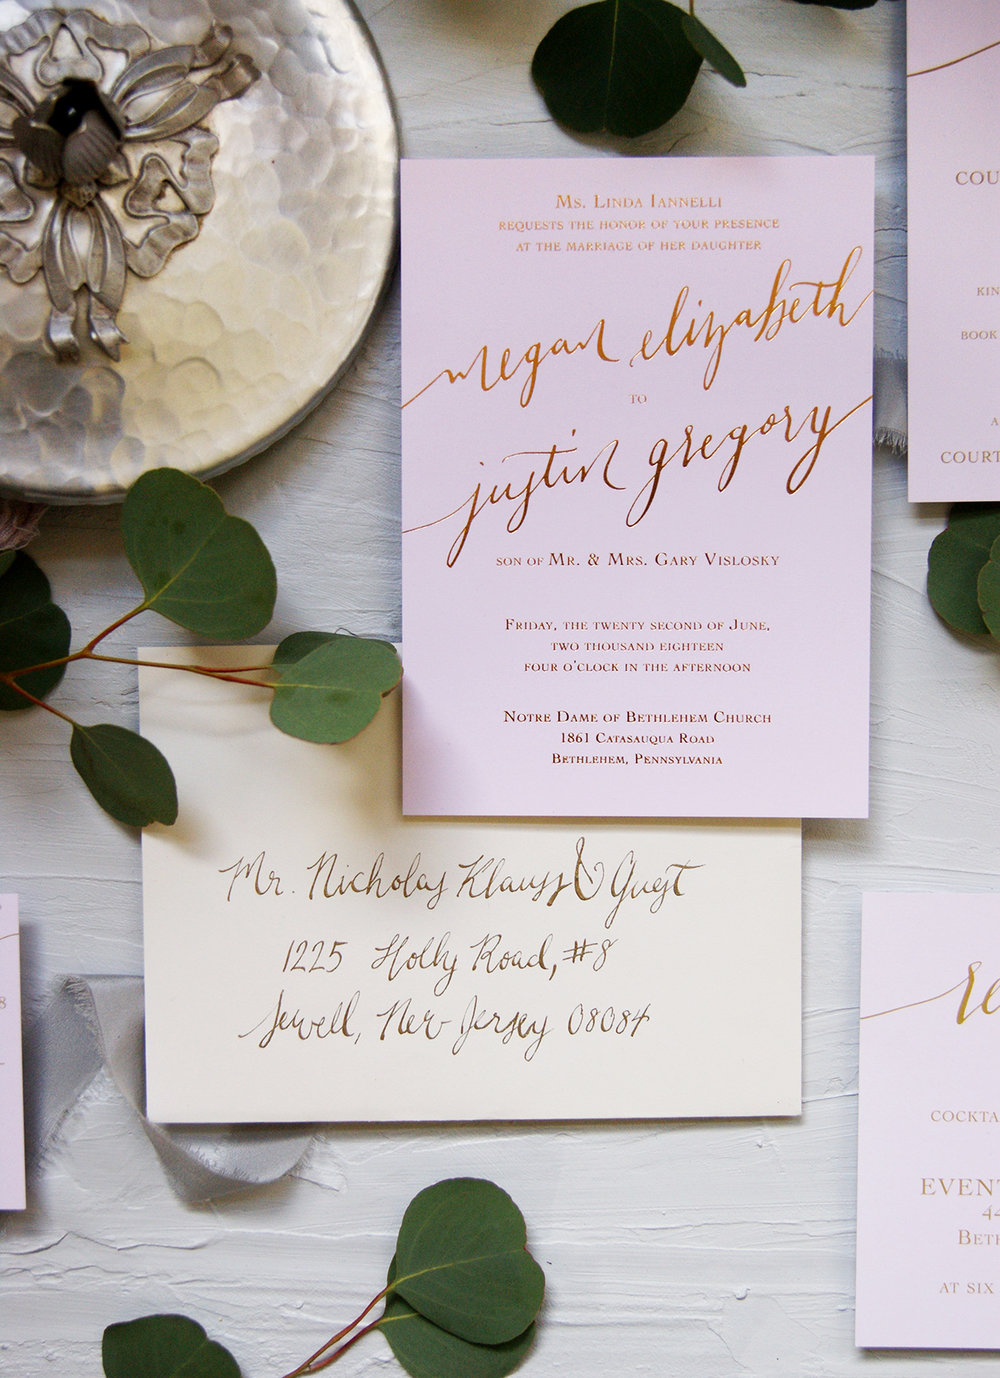 Blush-and-gold-custom-wedding-invite.jpg